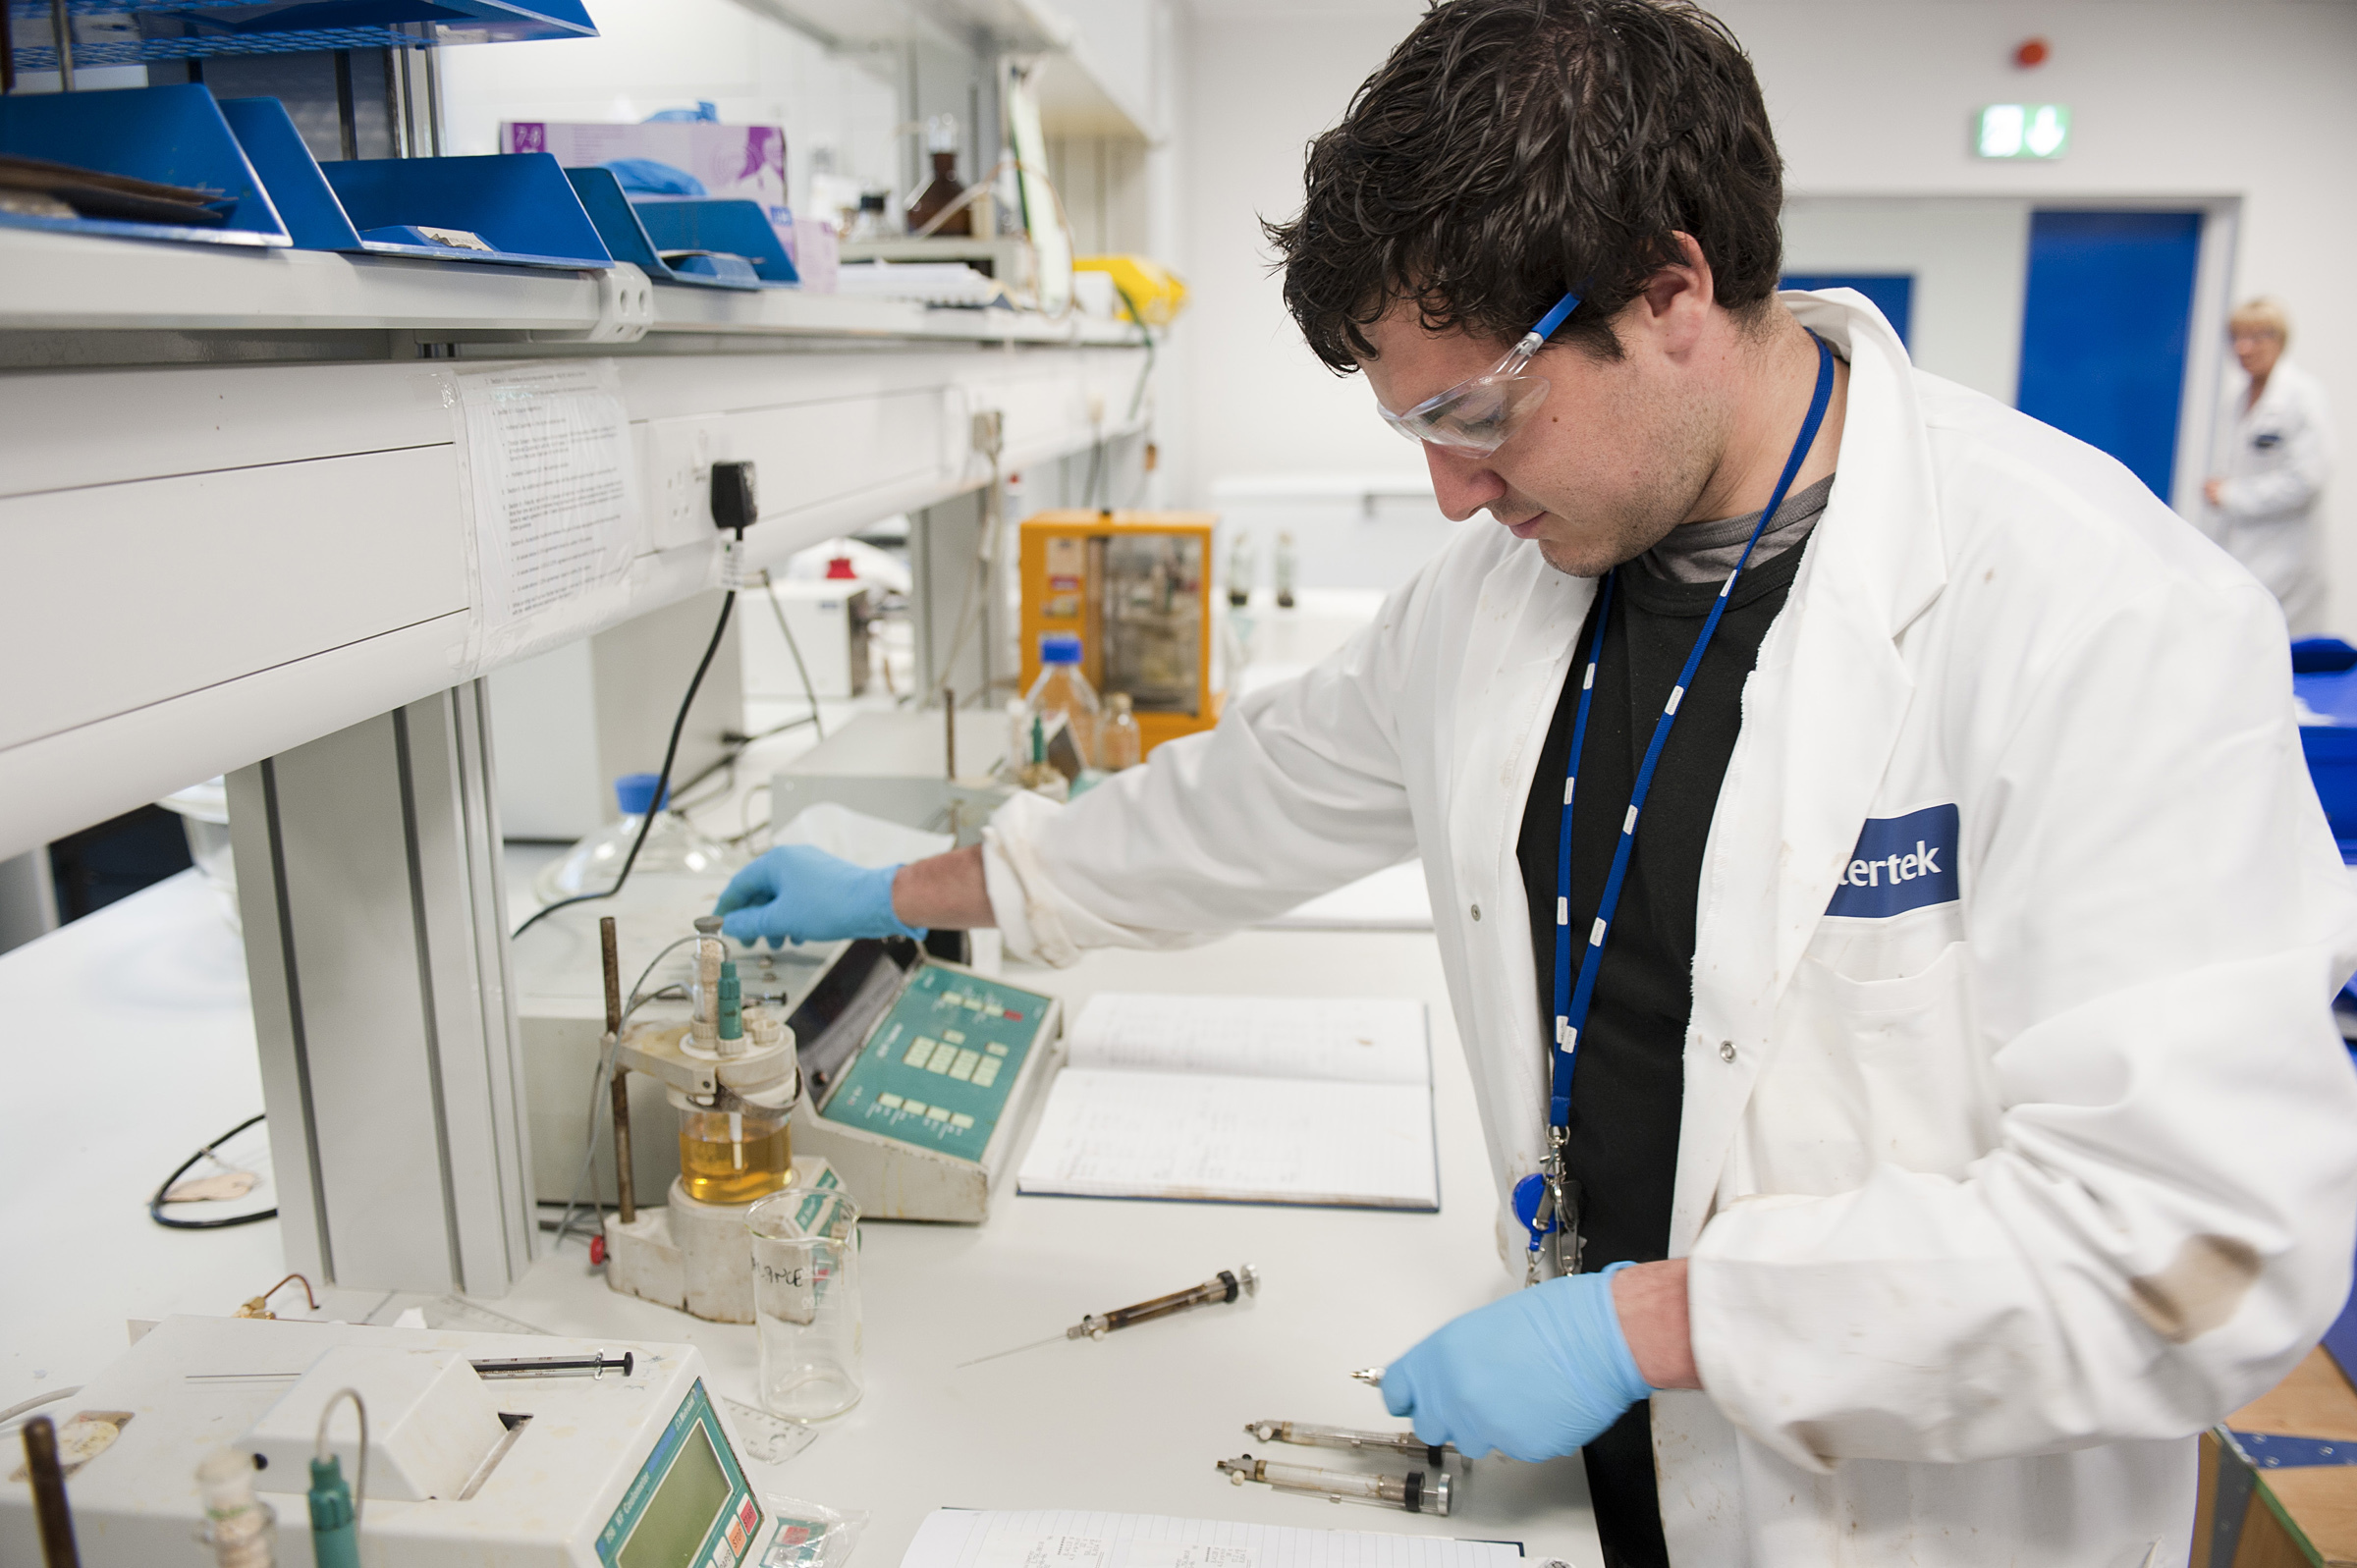 An Intertek employee working in the firm's Aberdeen lab.